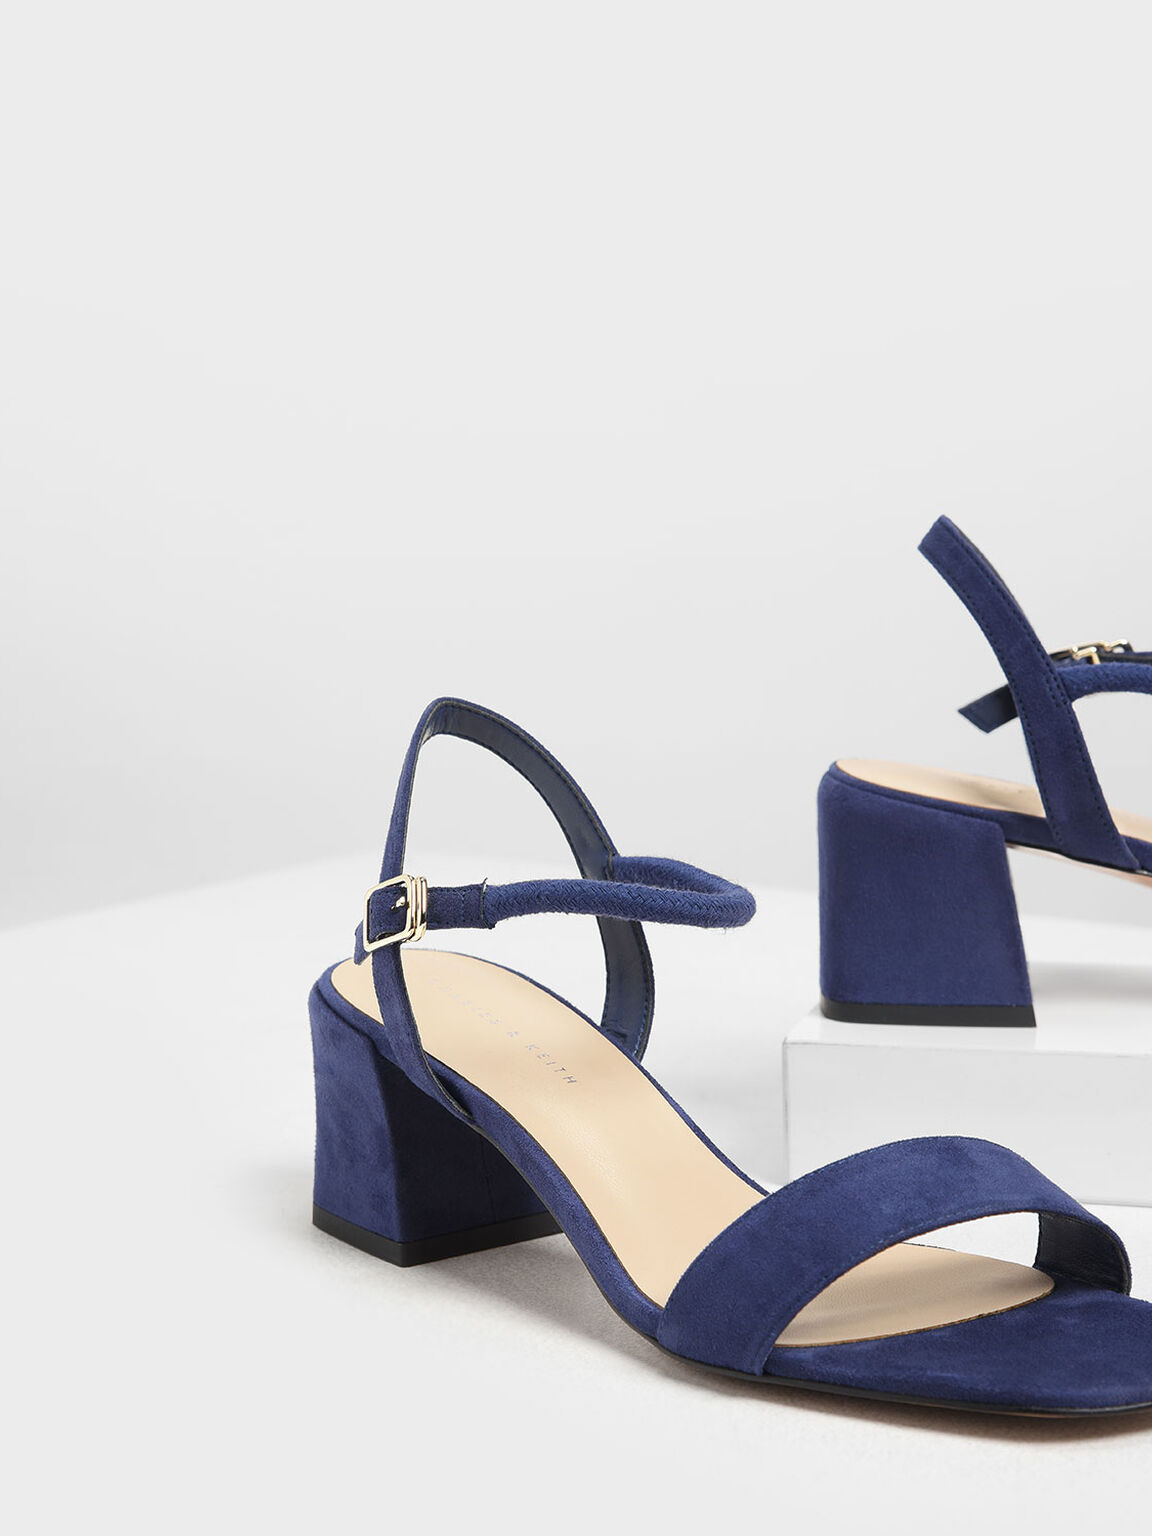 Open Toe Block Heel Sandals, Dark Blue, hi-res